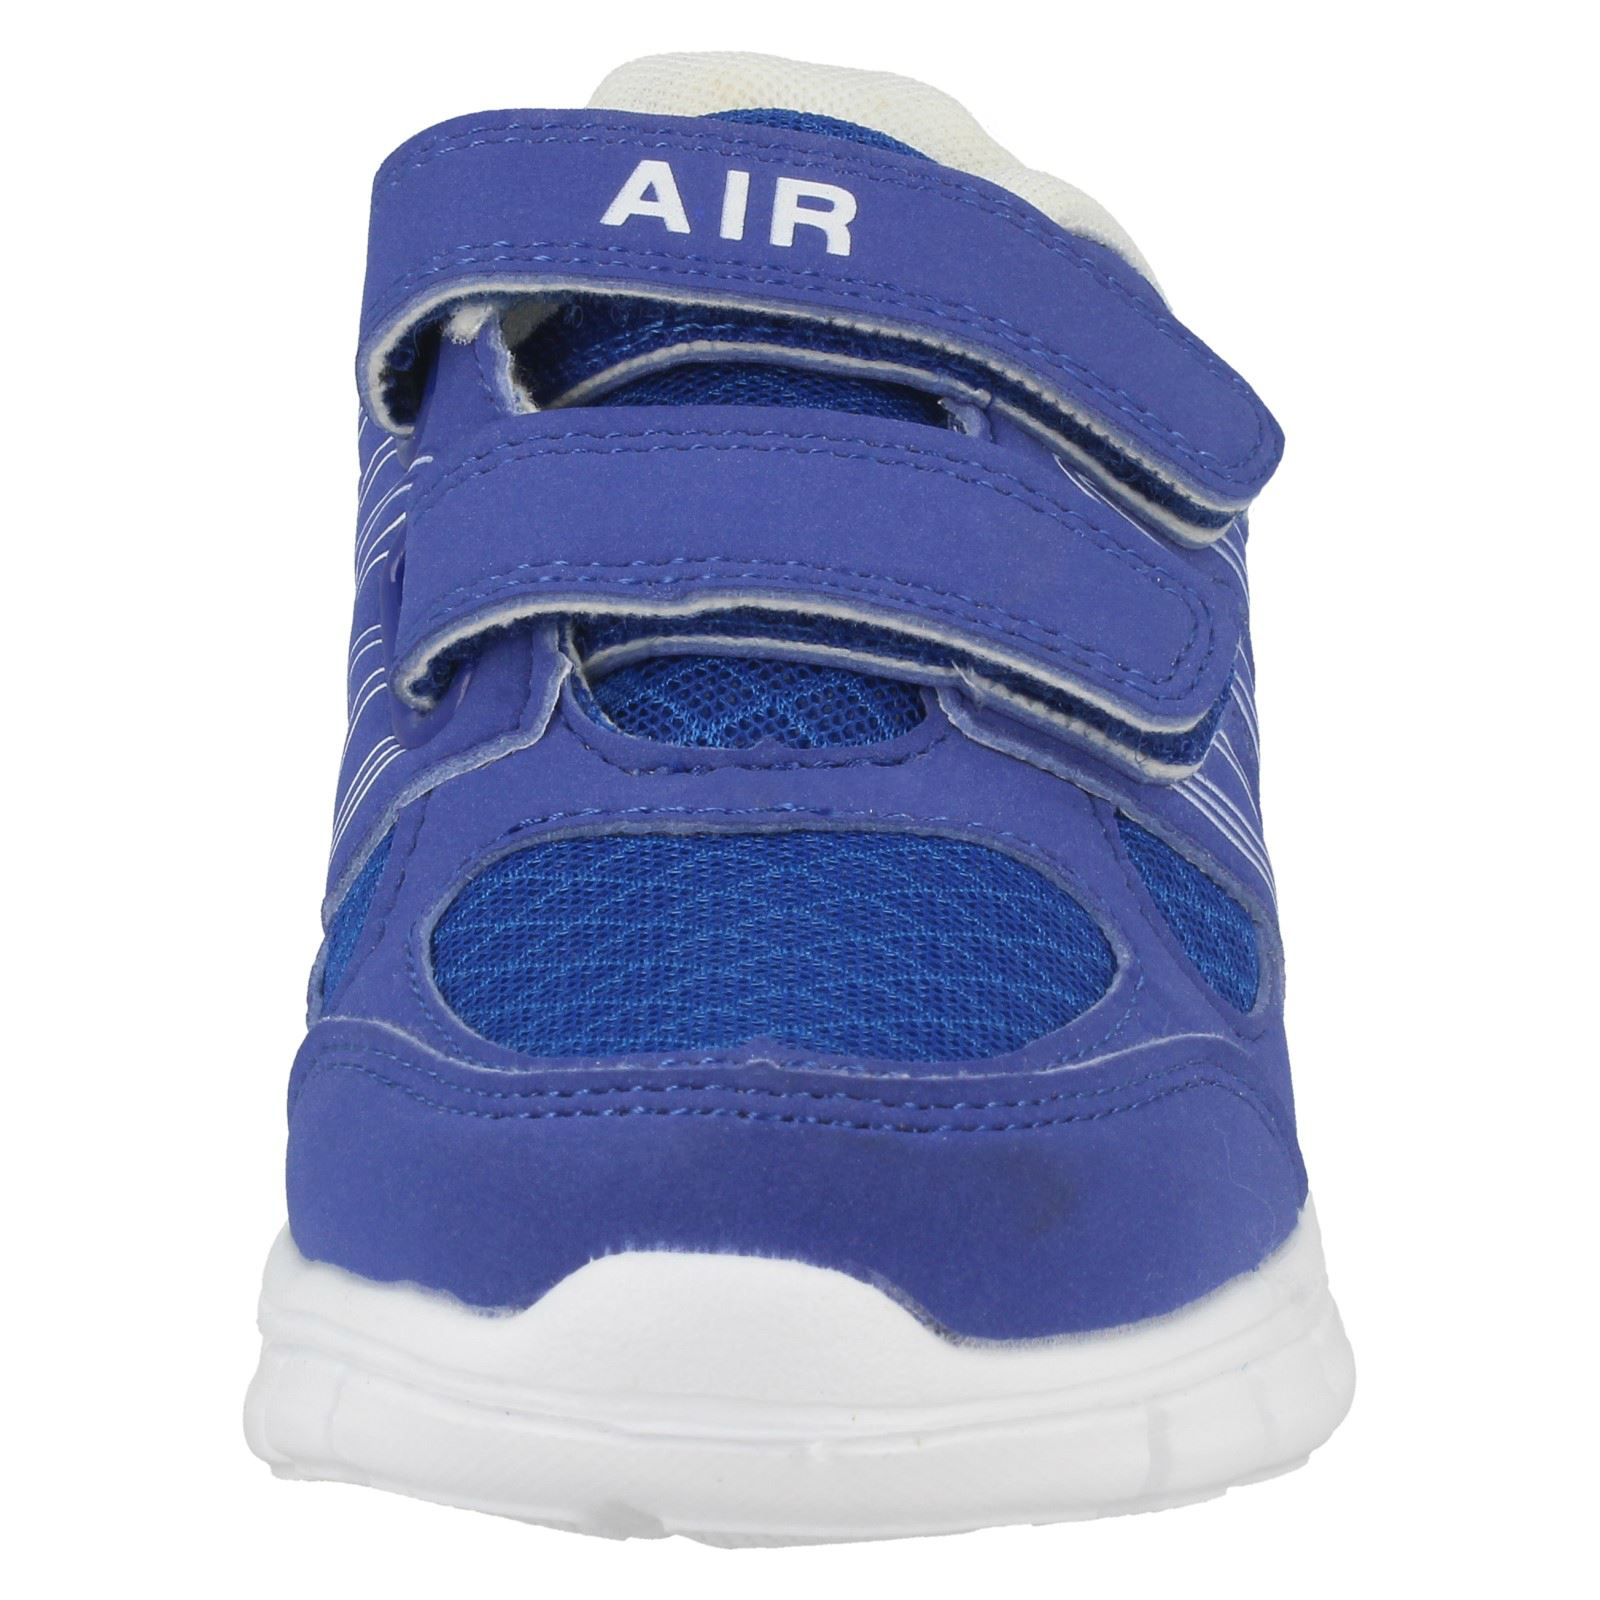 4deb59946873 Childrens Boys Girls Air Tech Textile Hook   Loop Fastening Trainers ...